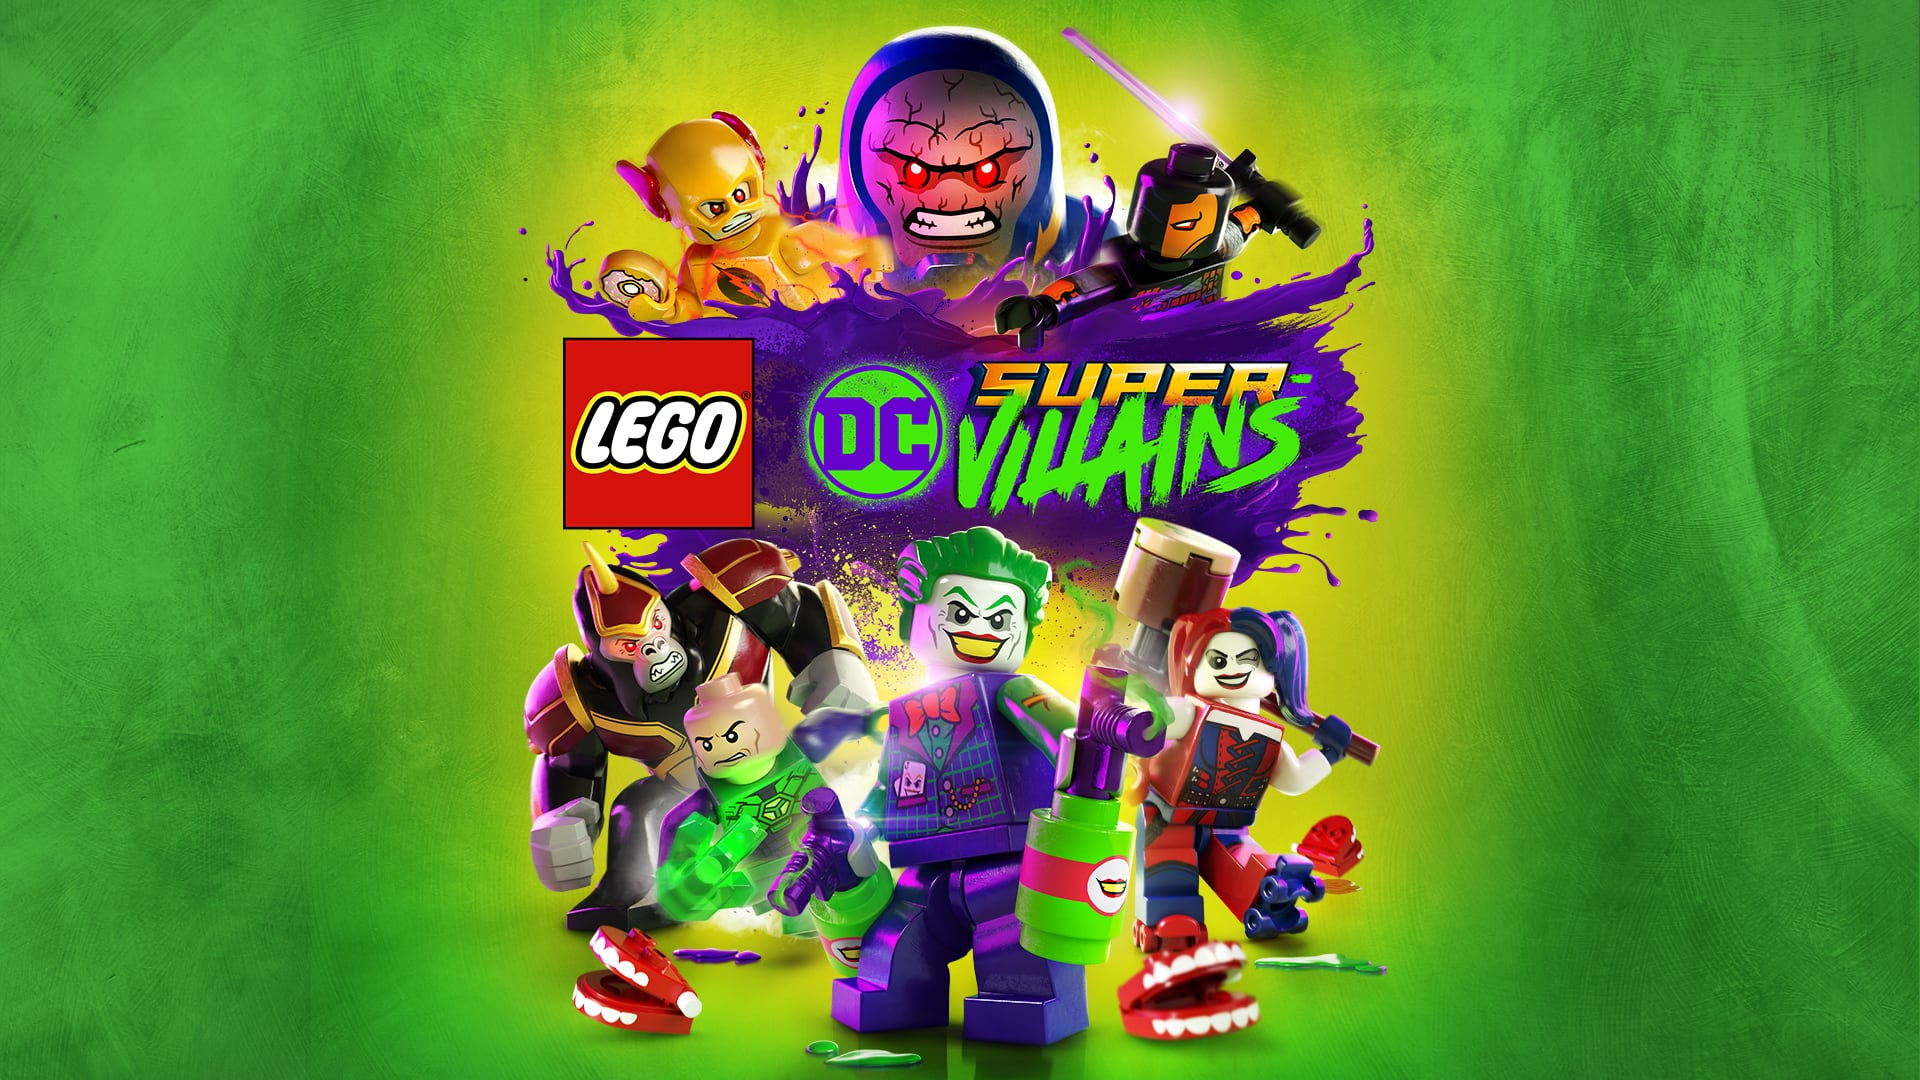 Switch Digital Games The Lego Movie 2 Video Game 10 Lego Dc Super Villains